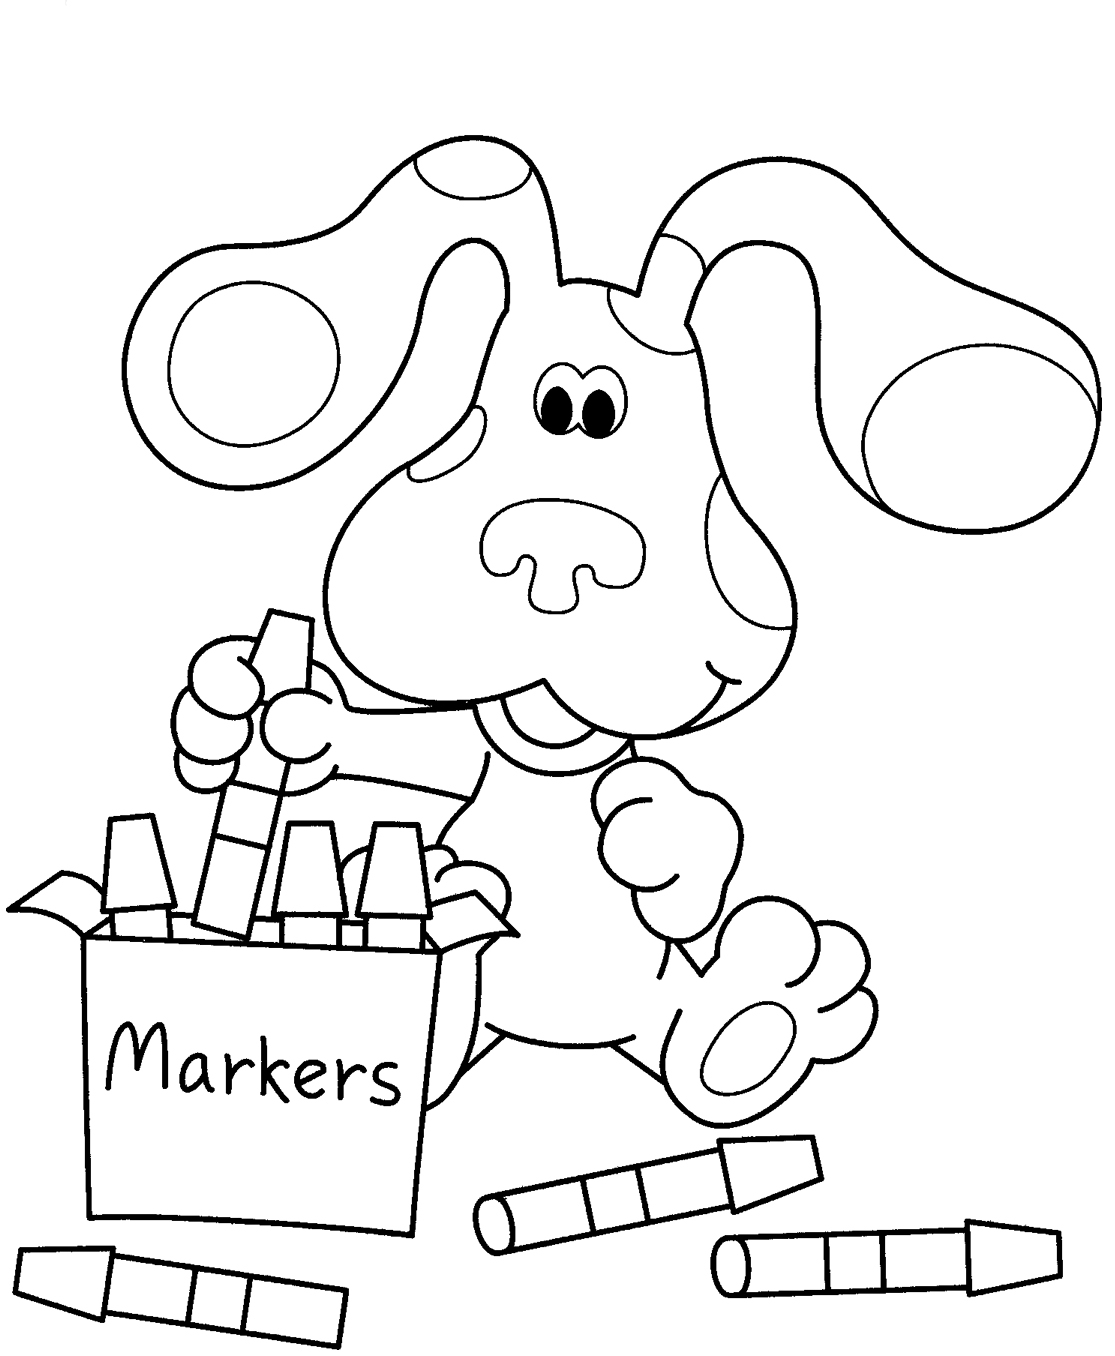 coloring pages at nick jr - photo#14